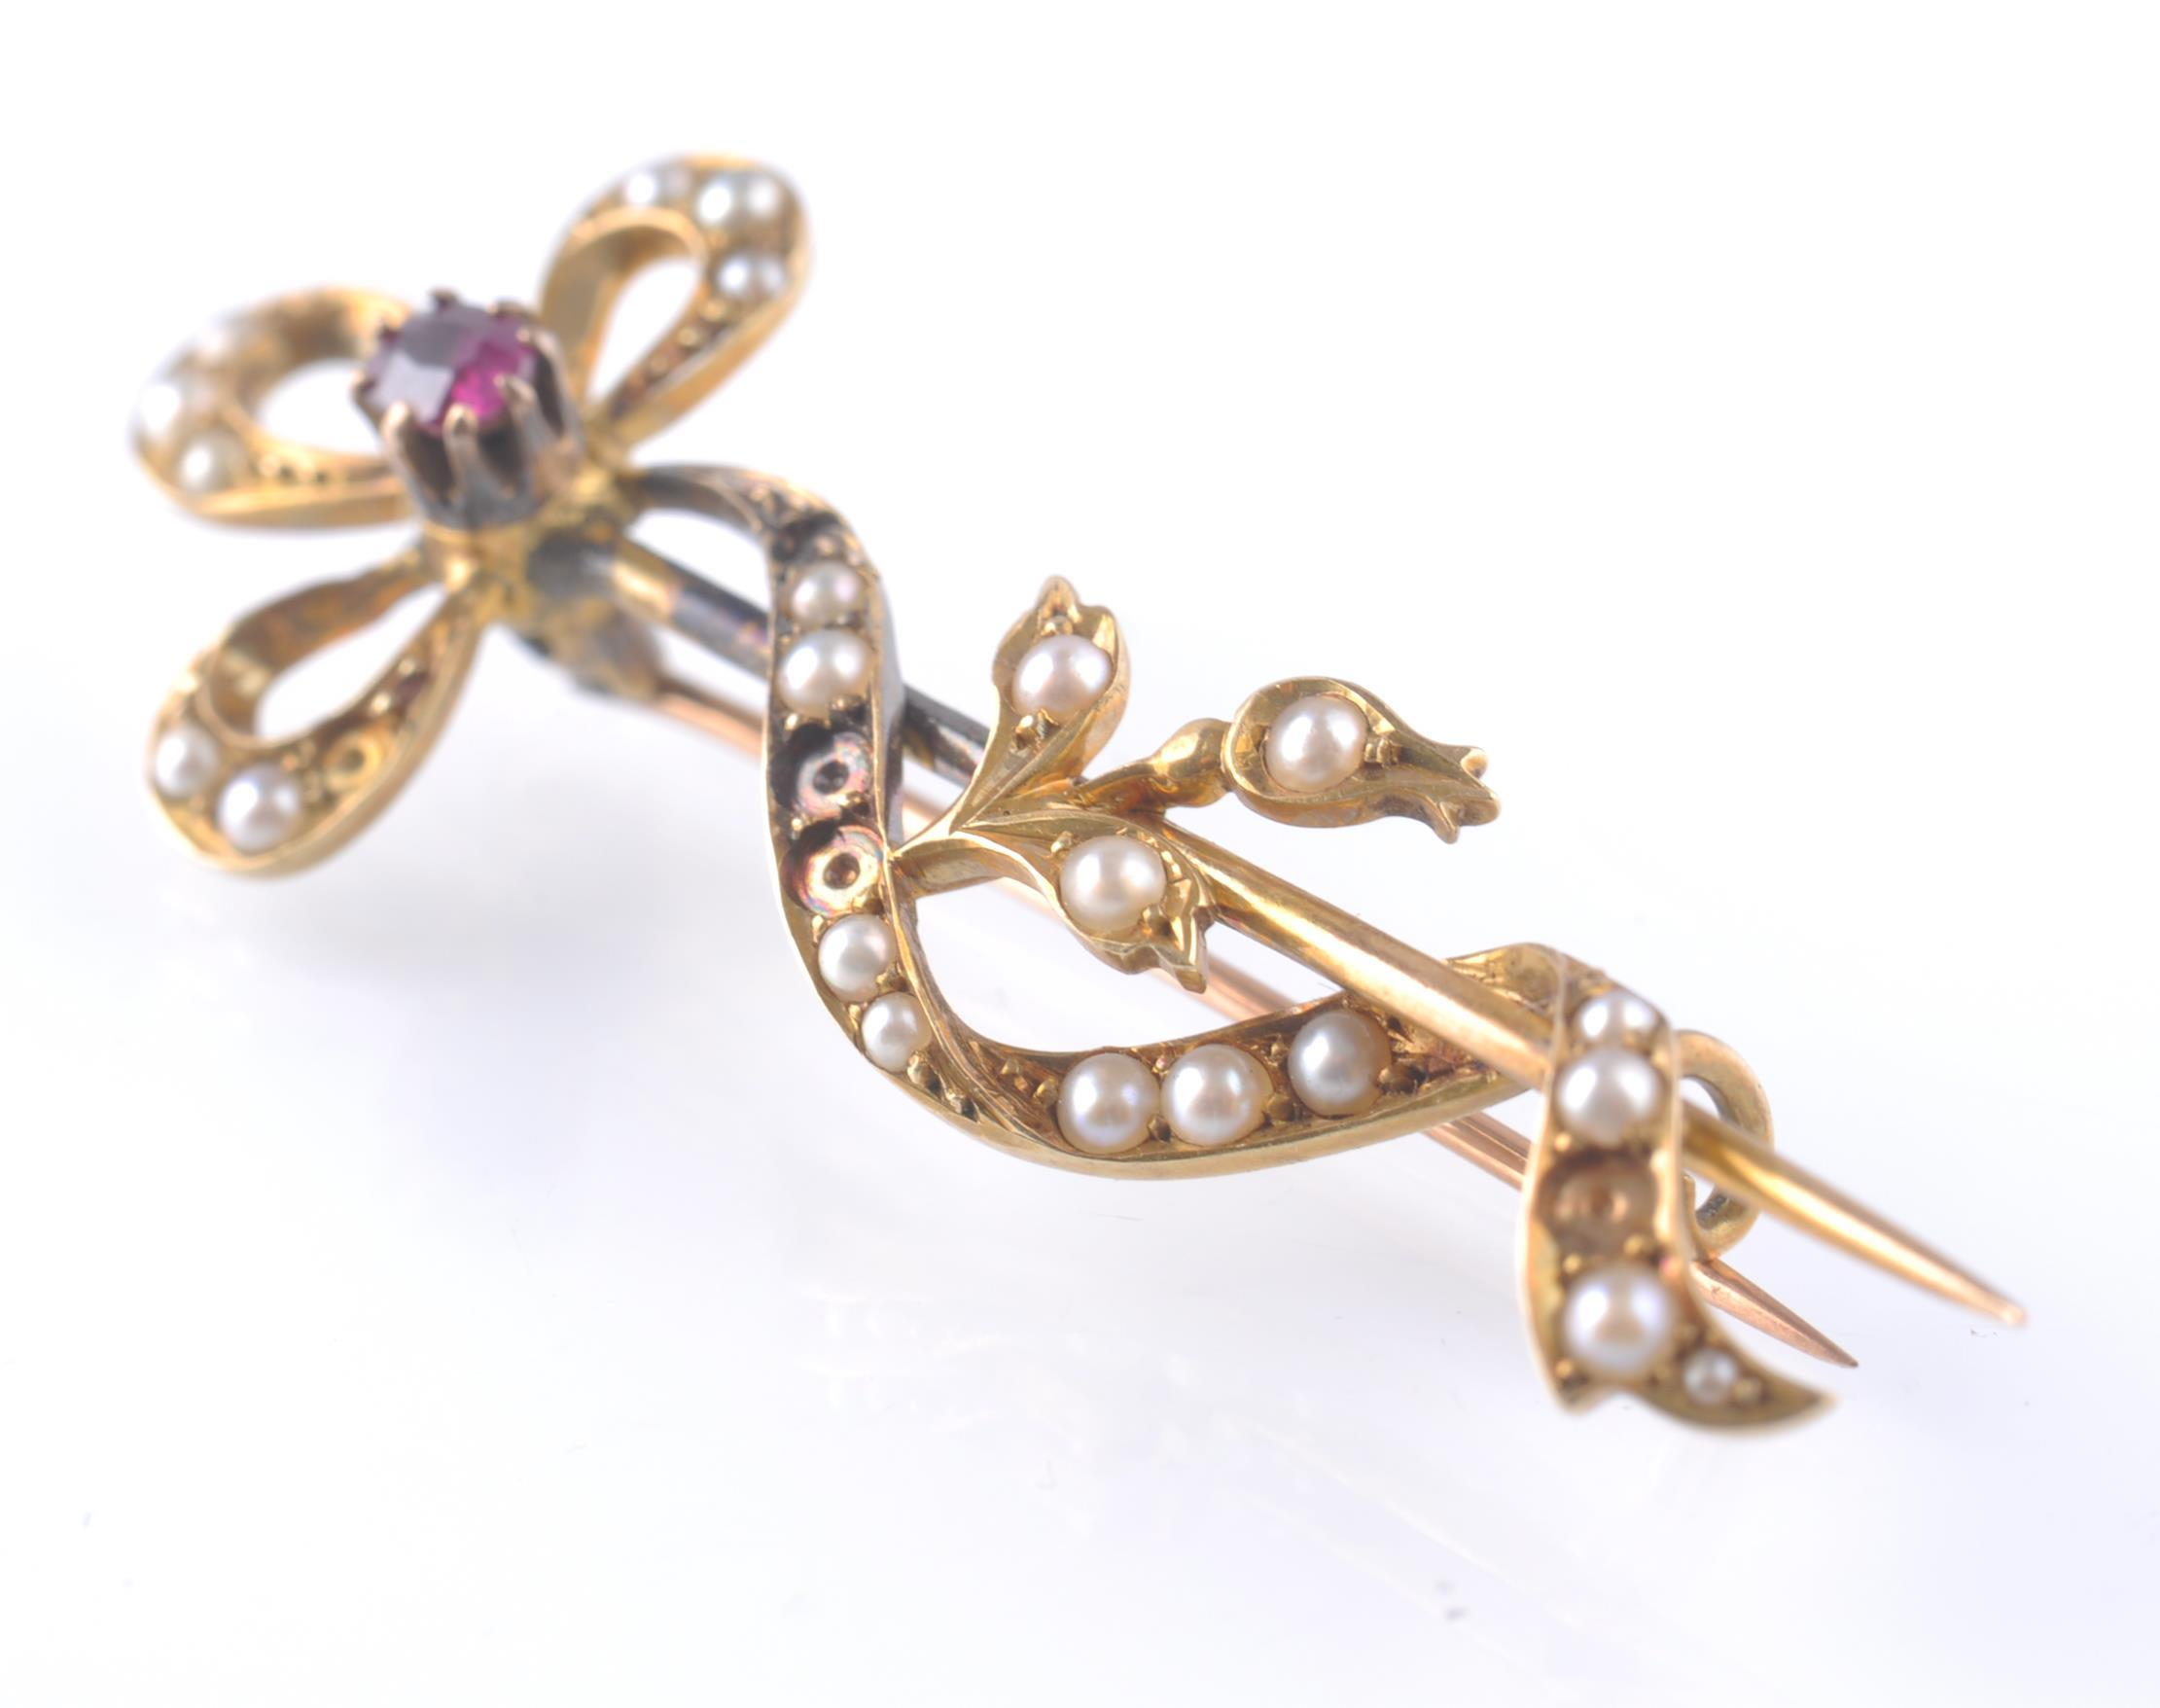 Lot 120 - 18CT GOLD RUBY AND SEED PEARL STICK PIN BROOCH